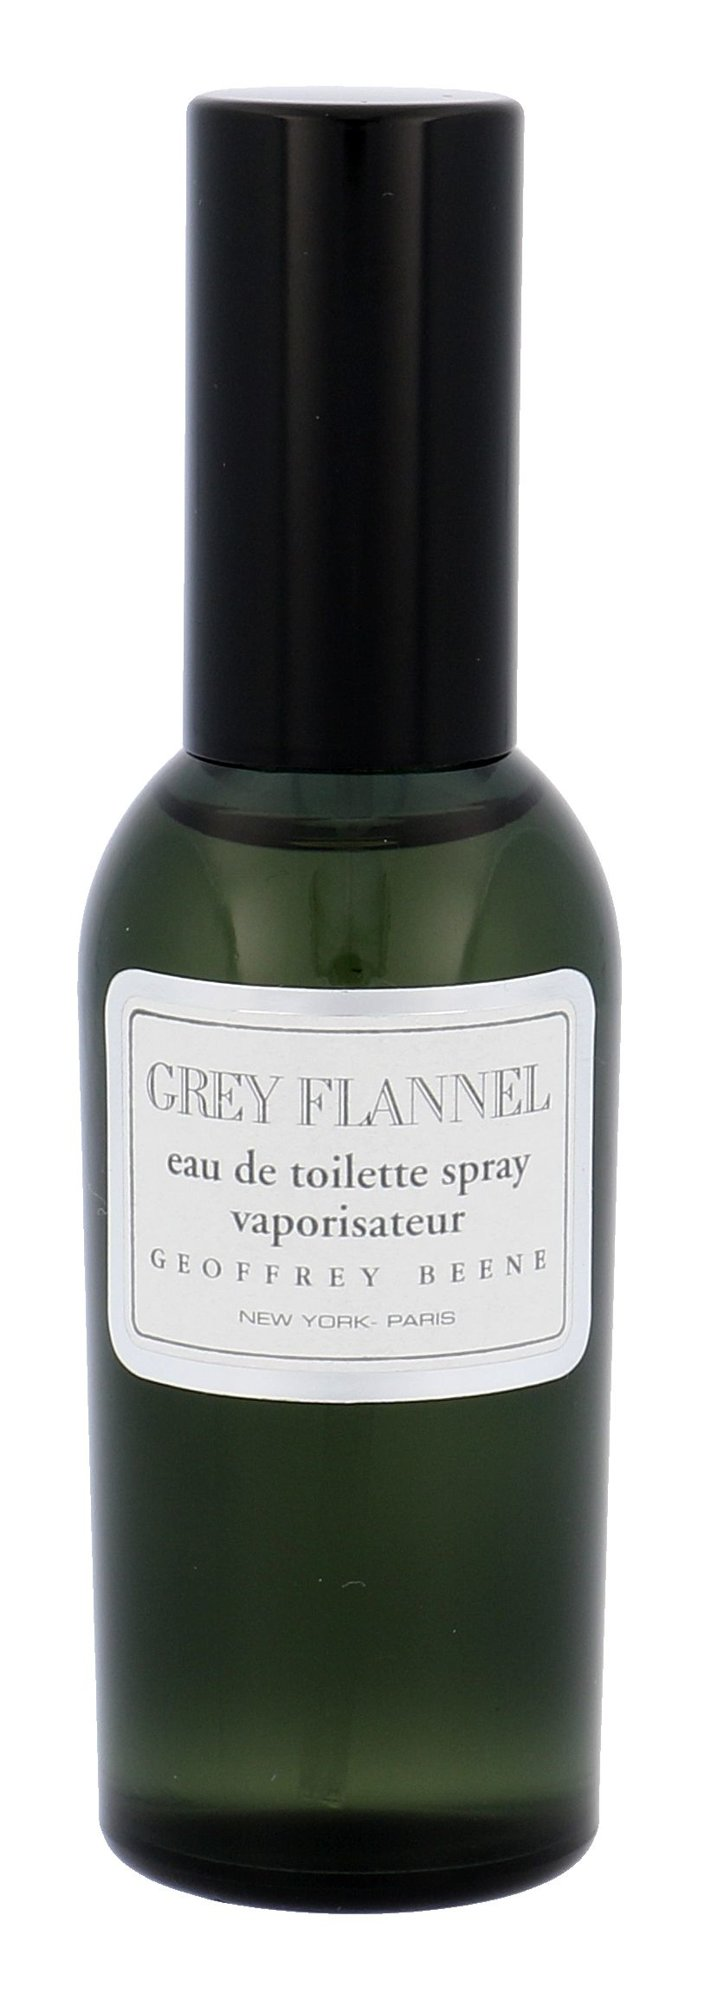 Geoffrey Beene Grey Flannel EDT 30ml